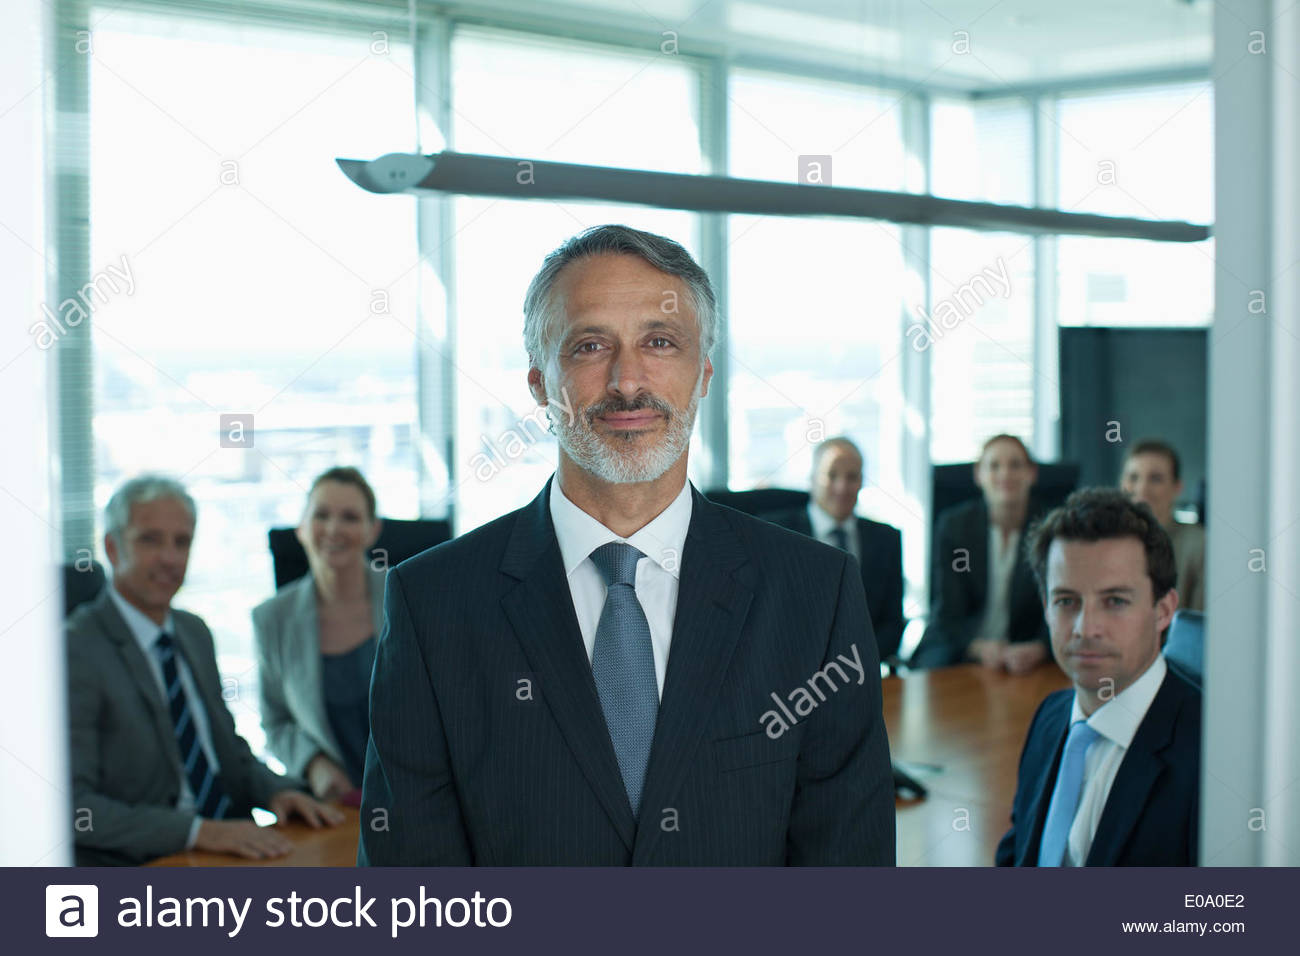 Portrait of smiling businessman and co-workers in conference room - Stock Image